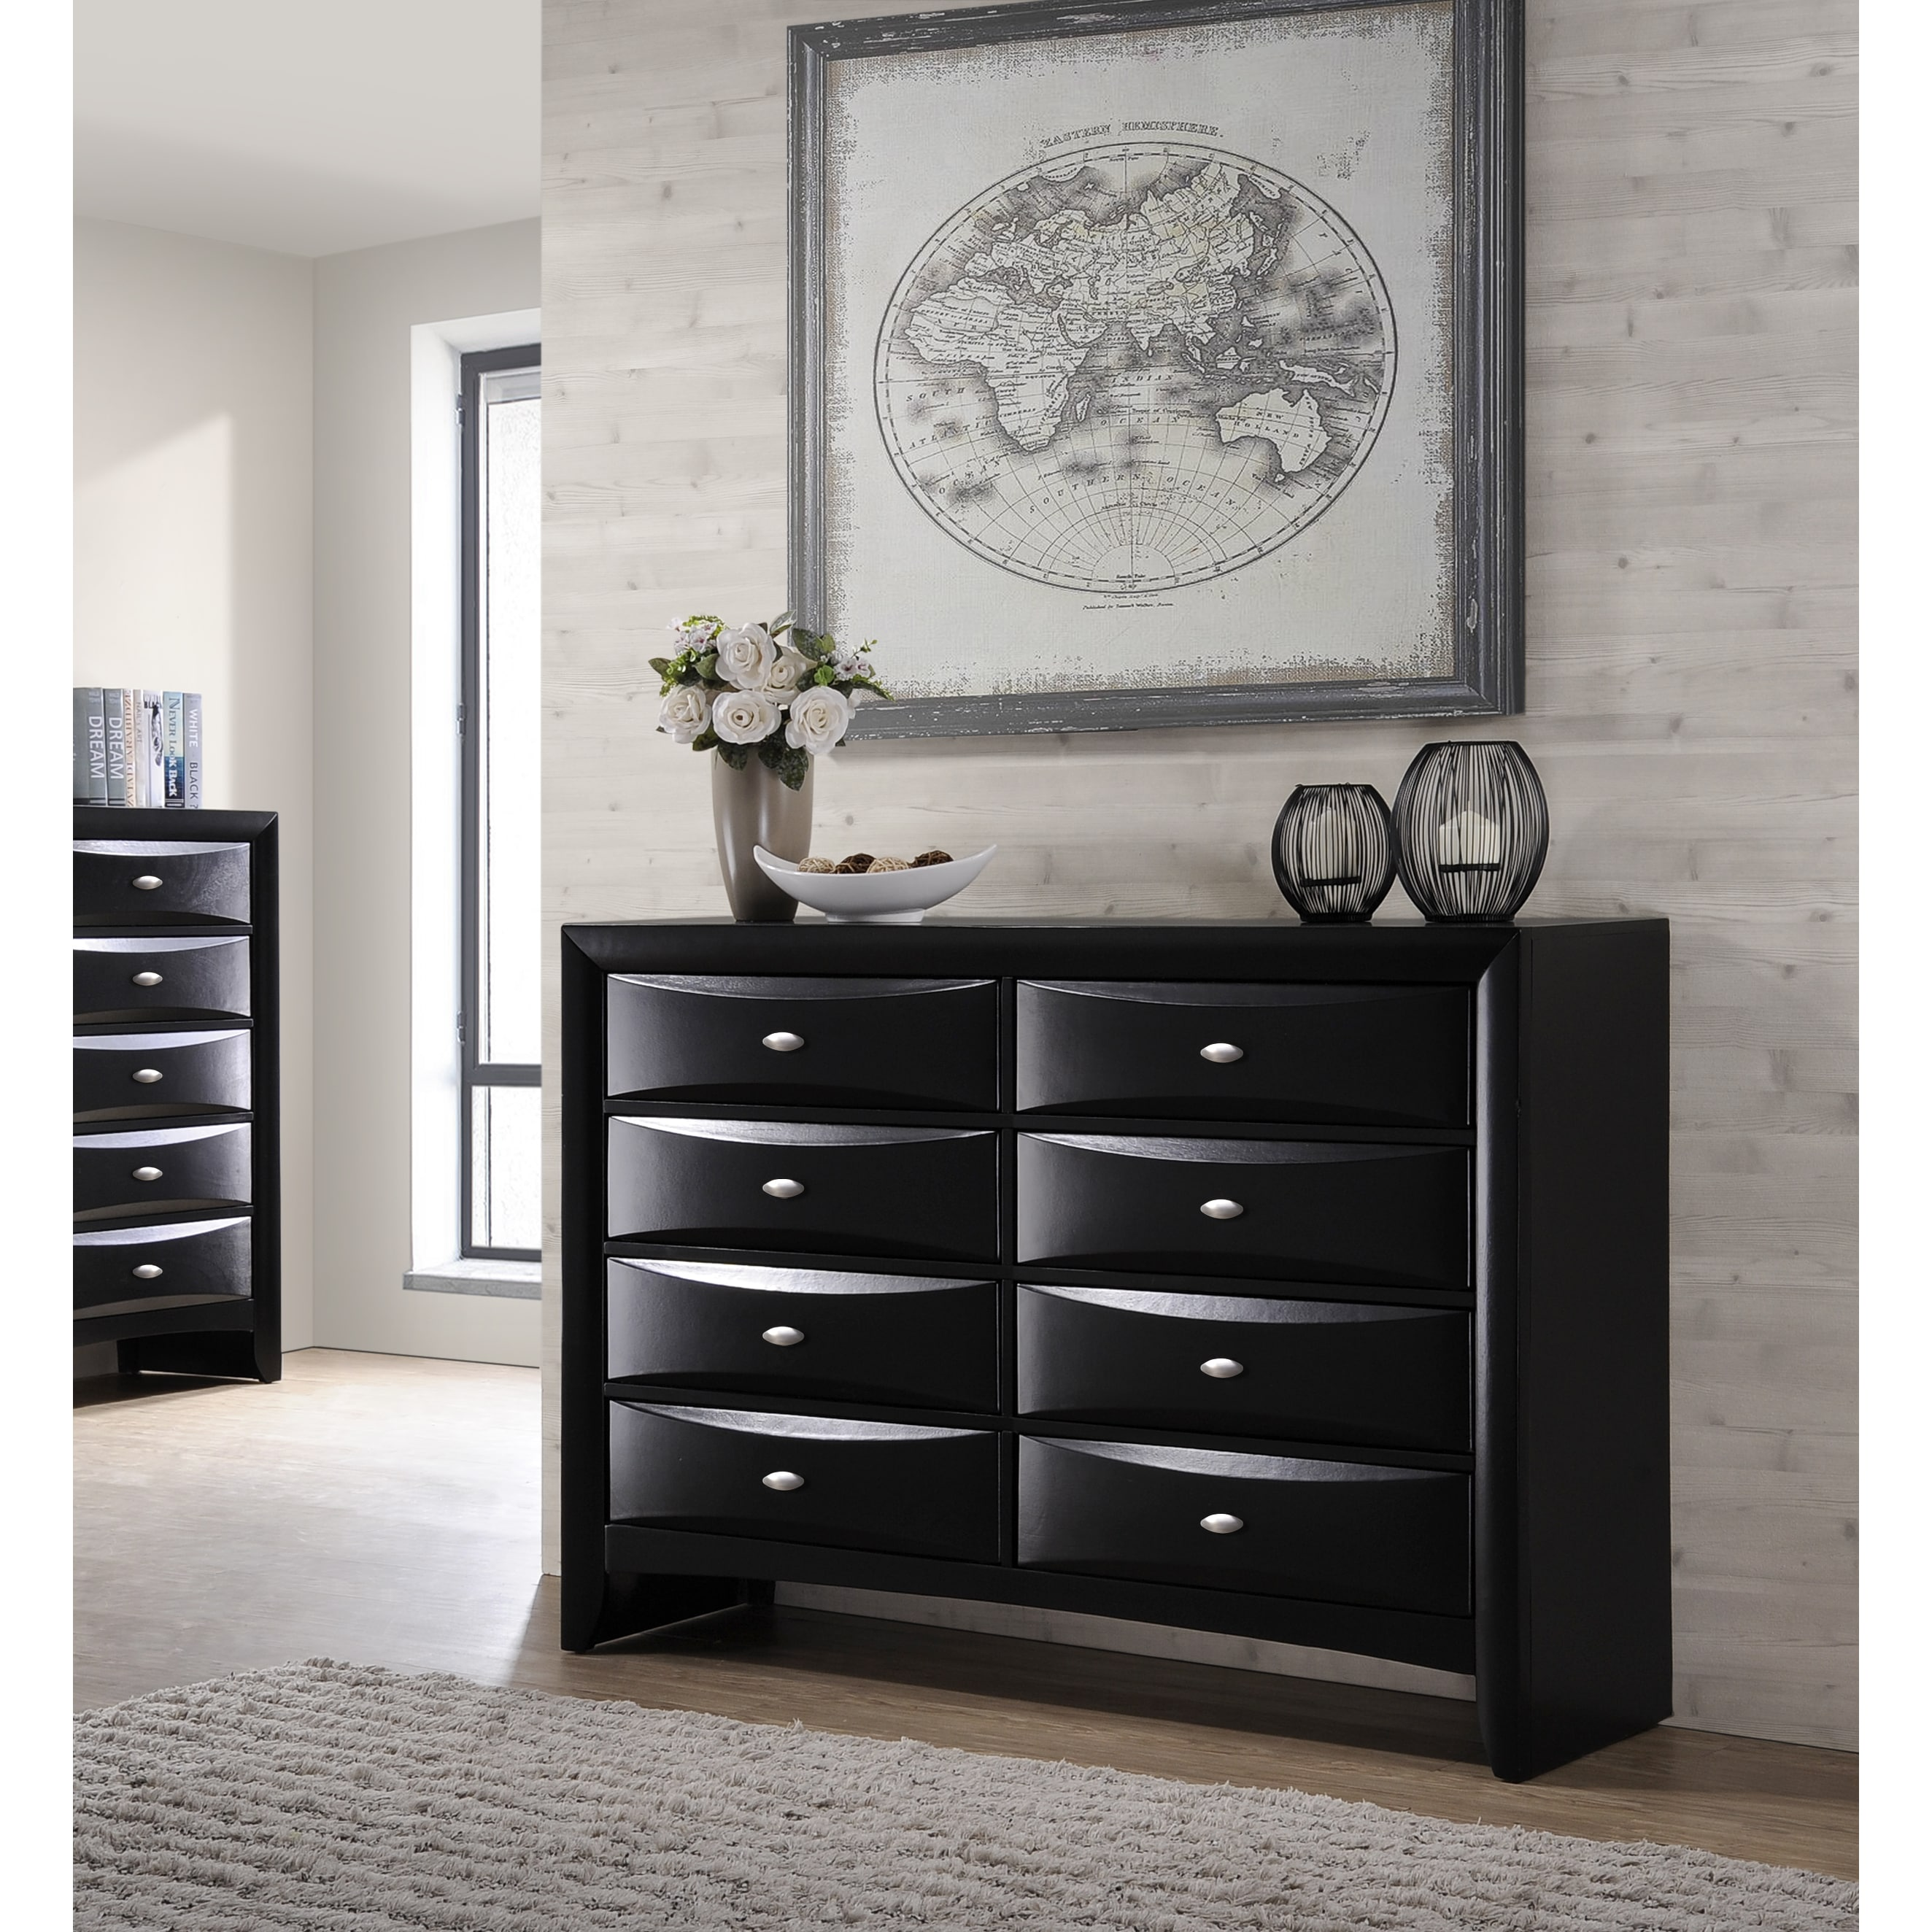 Shop blemerey fully assembled black finish wood dresser free shipping today overstock com 14807610